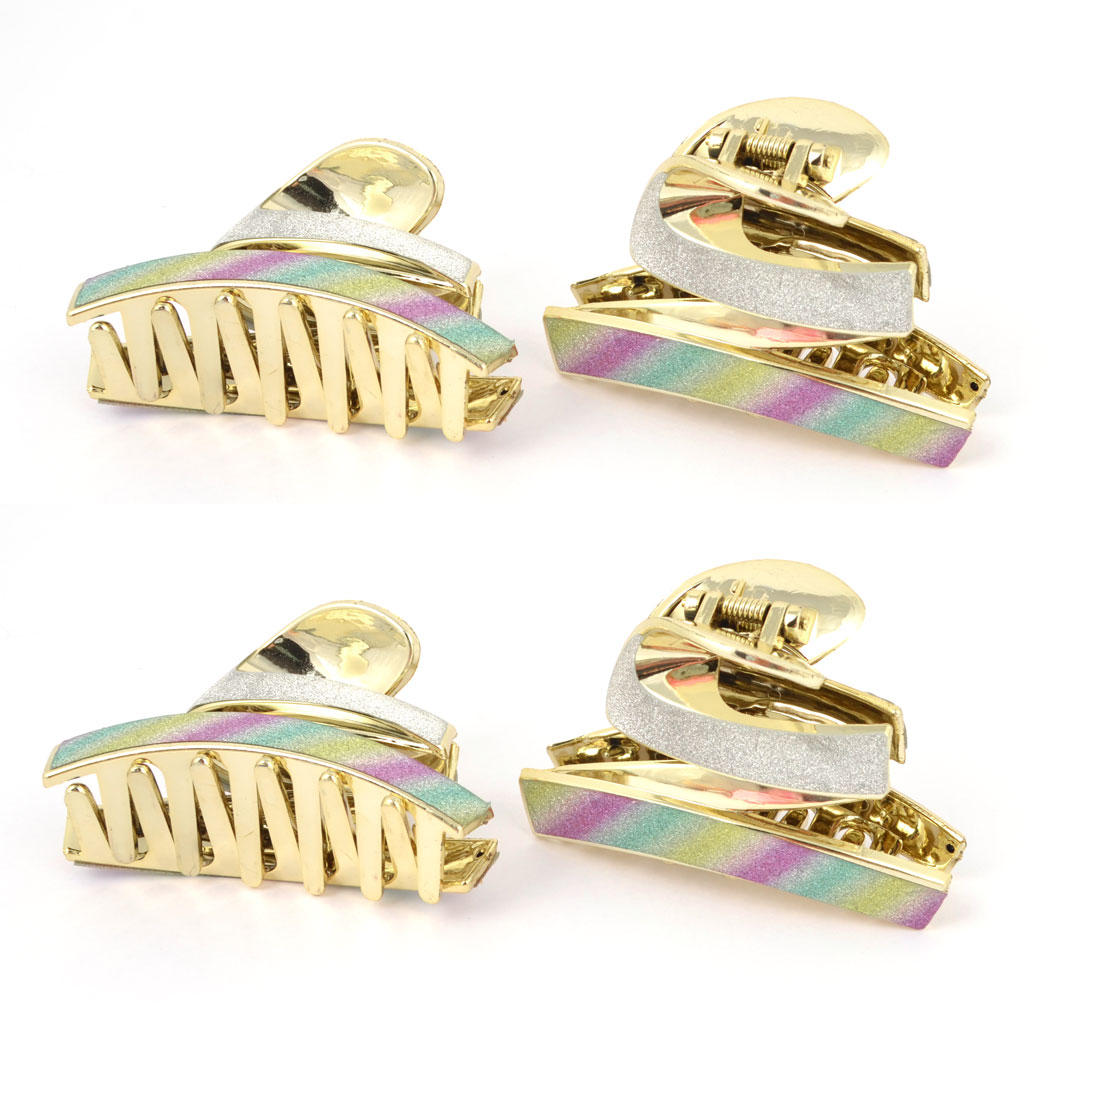 12 Pcs Gold Tone Plastic Teeth Colorful Rainbow Pattern Hairclip Hair Clamp Claw for Lady